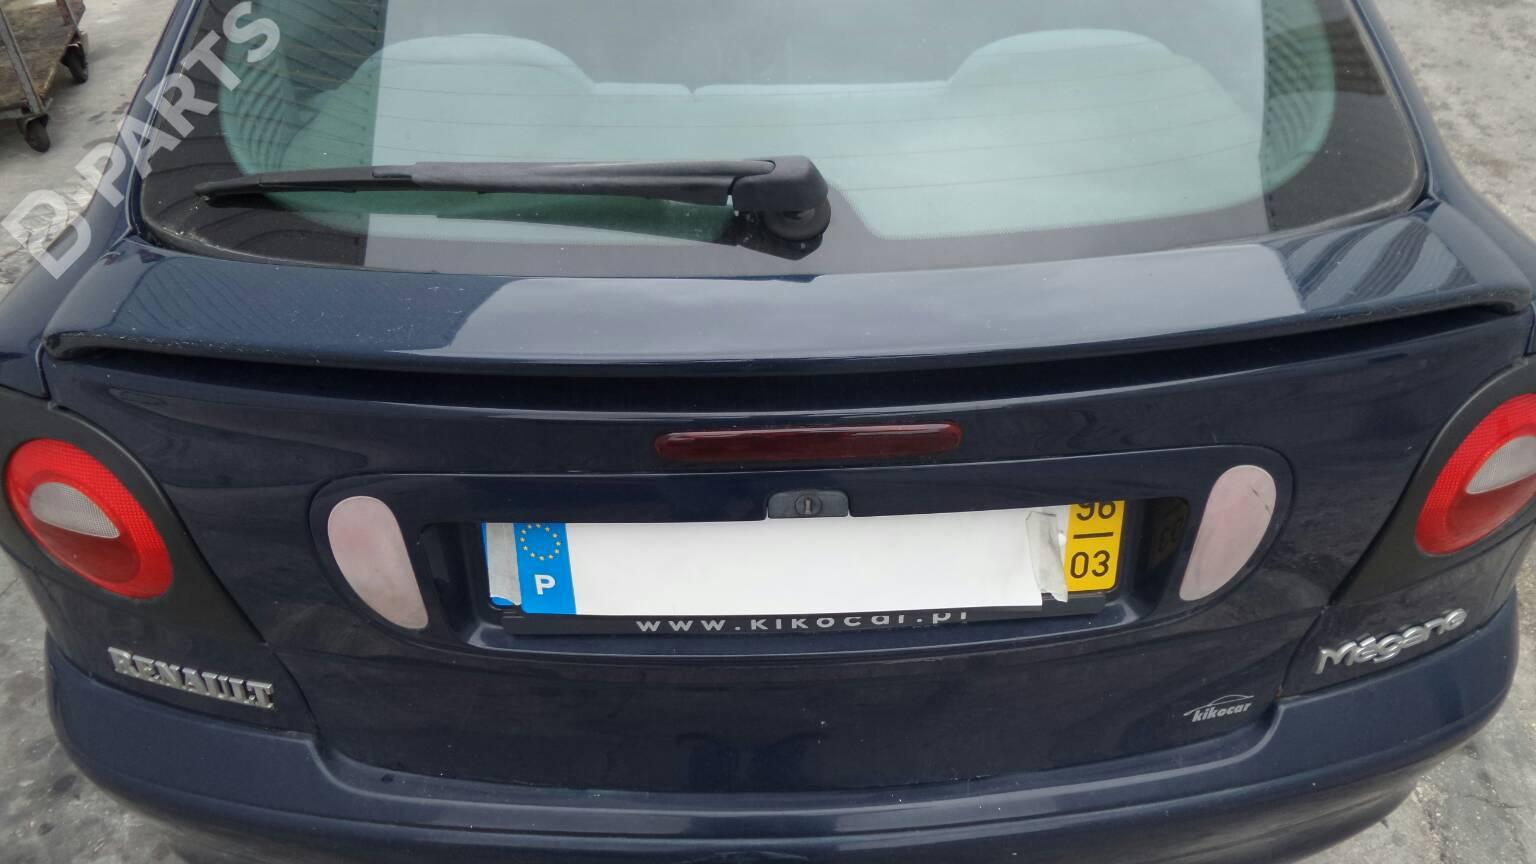 "RENAULT SCENIC TAILGATE LETTER /""I/"" FITS ON TAILGATE"